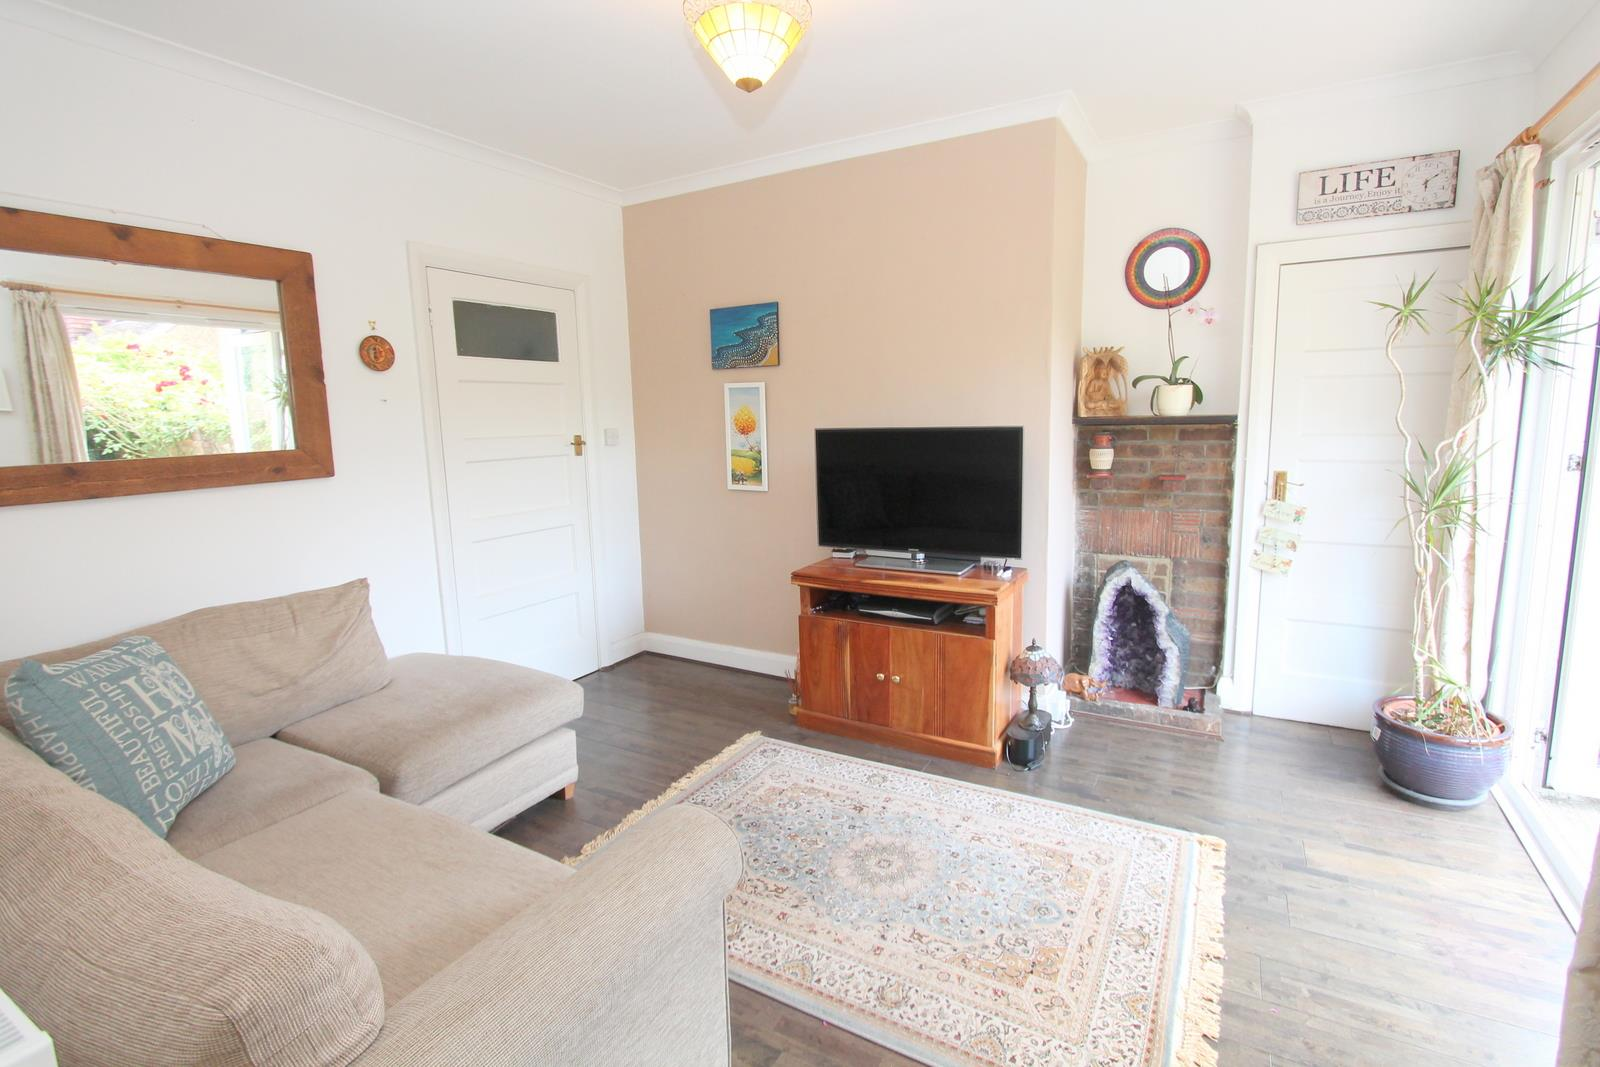 Property in Foxley Lane, Purley, Surrey, CR8 3NF